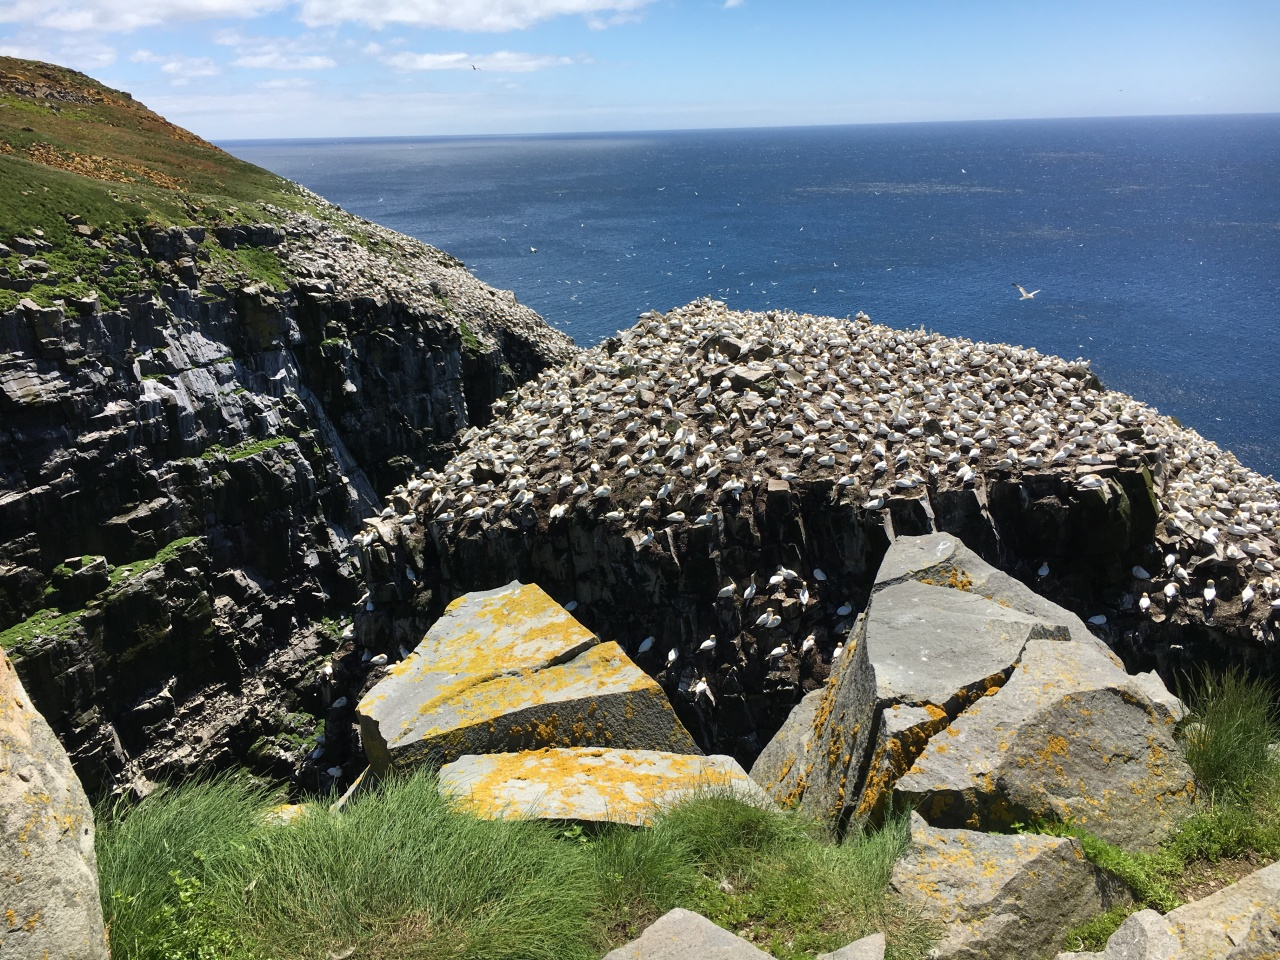 The Seabirds of St. Mary's Cove